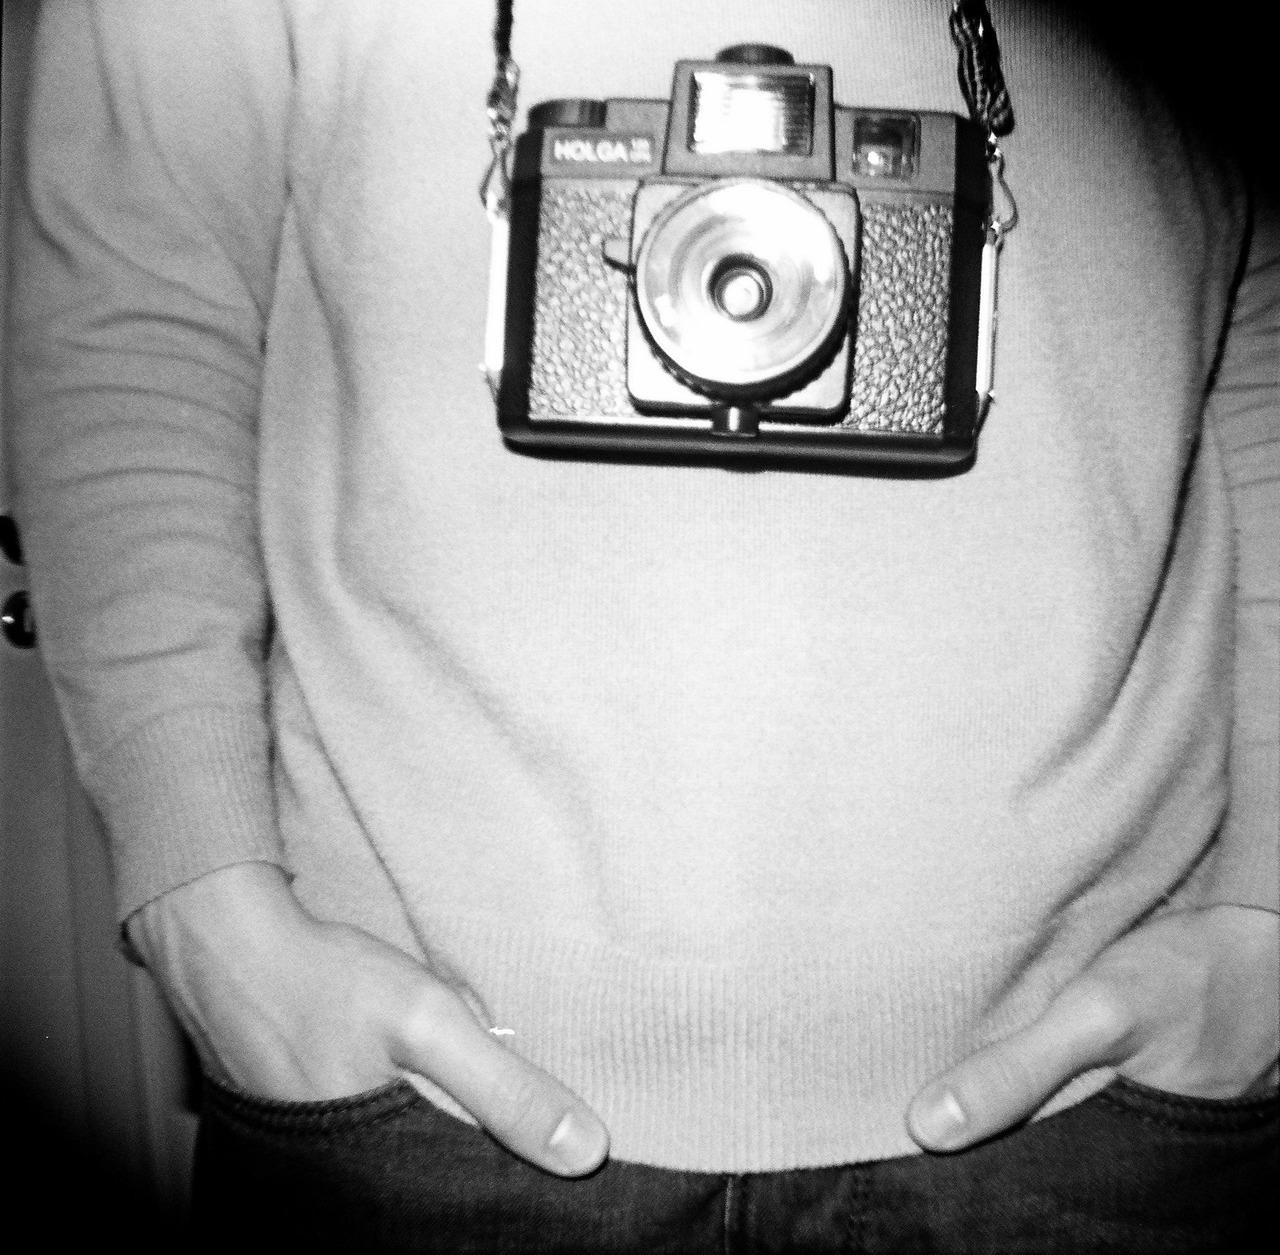 Lucaro and his HOLGA. Fujifilm Neopan 100 + Diana Mini